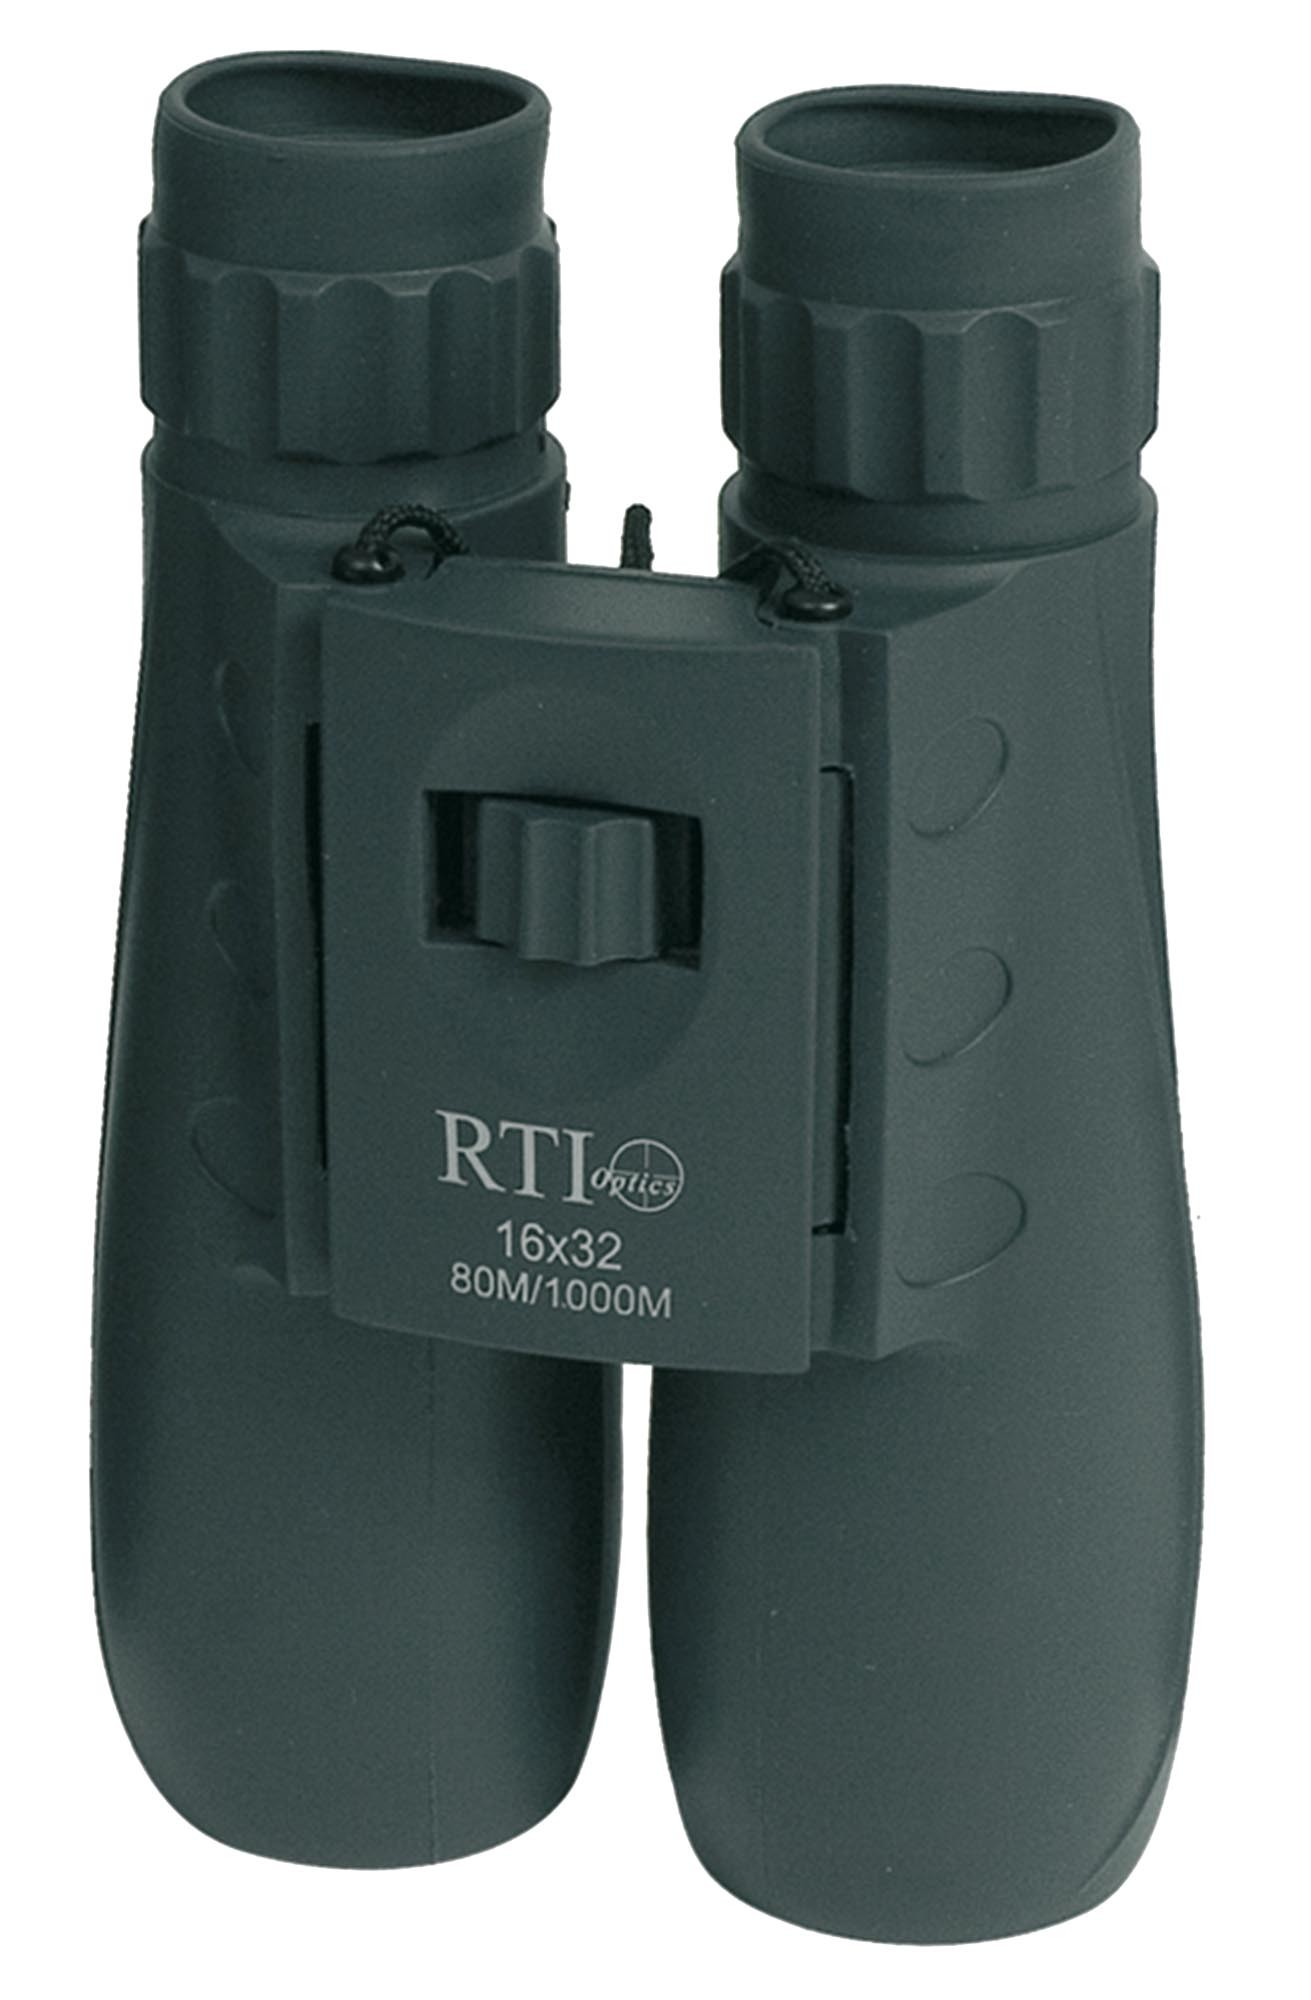 Jumelles pliantes rti 16x32, made in chasse - equipements...